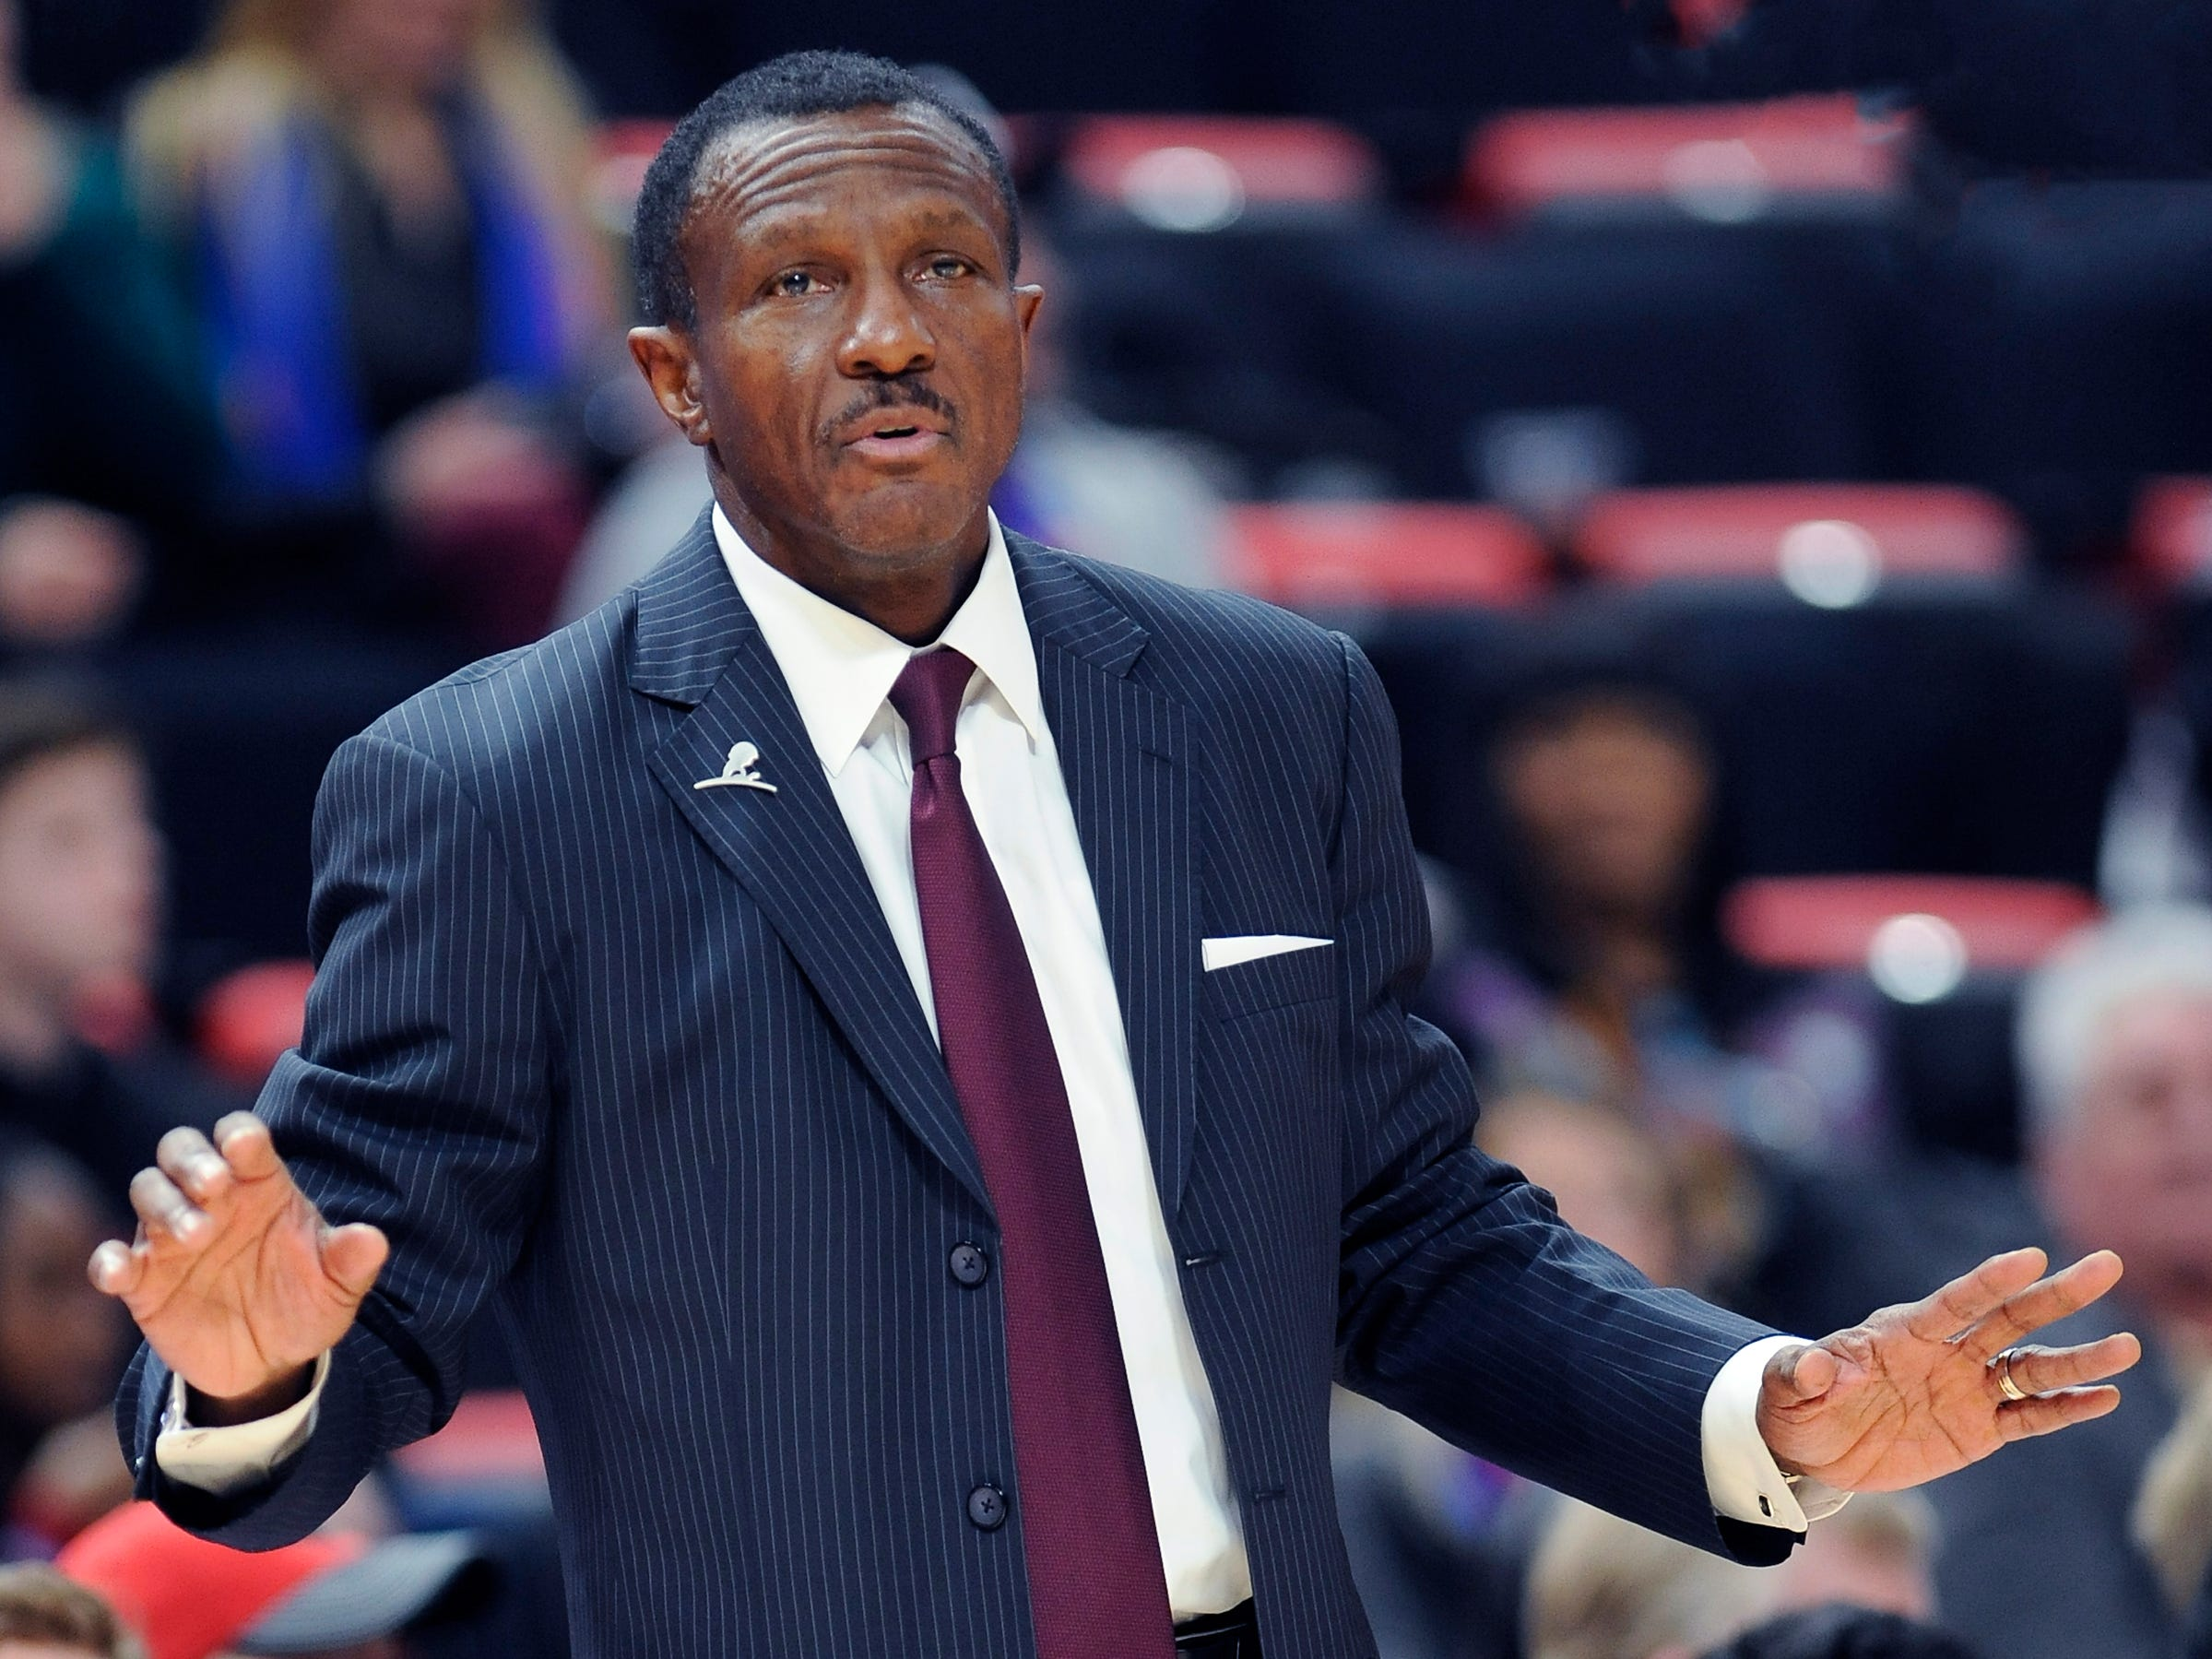 COACHING -- In his first season, Dwane Casey has done well to establish a new culture and identity and to bring more accountability in making players compete for and earn their minutes. The offense hasn't caught on as quickly as he'd like because shots haven't been falling, but the philosophy of finding open shots has worked well. He's created good relationships with his players and they believe in what he's creating.  Grade: B